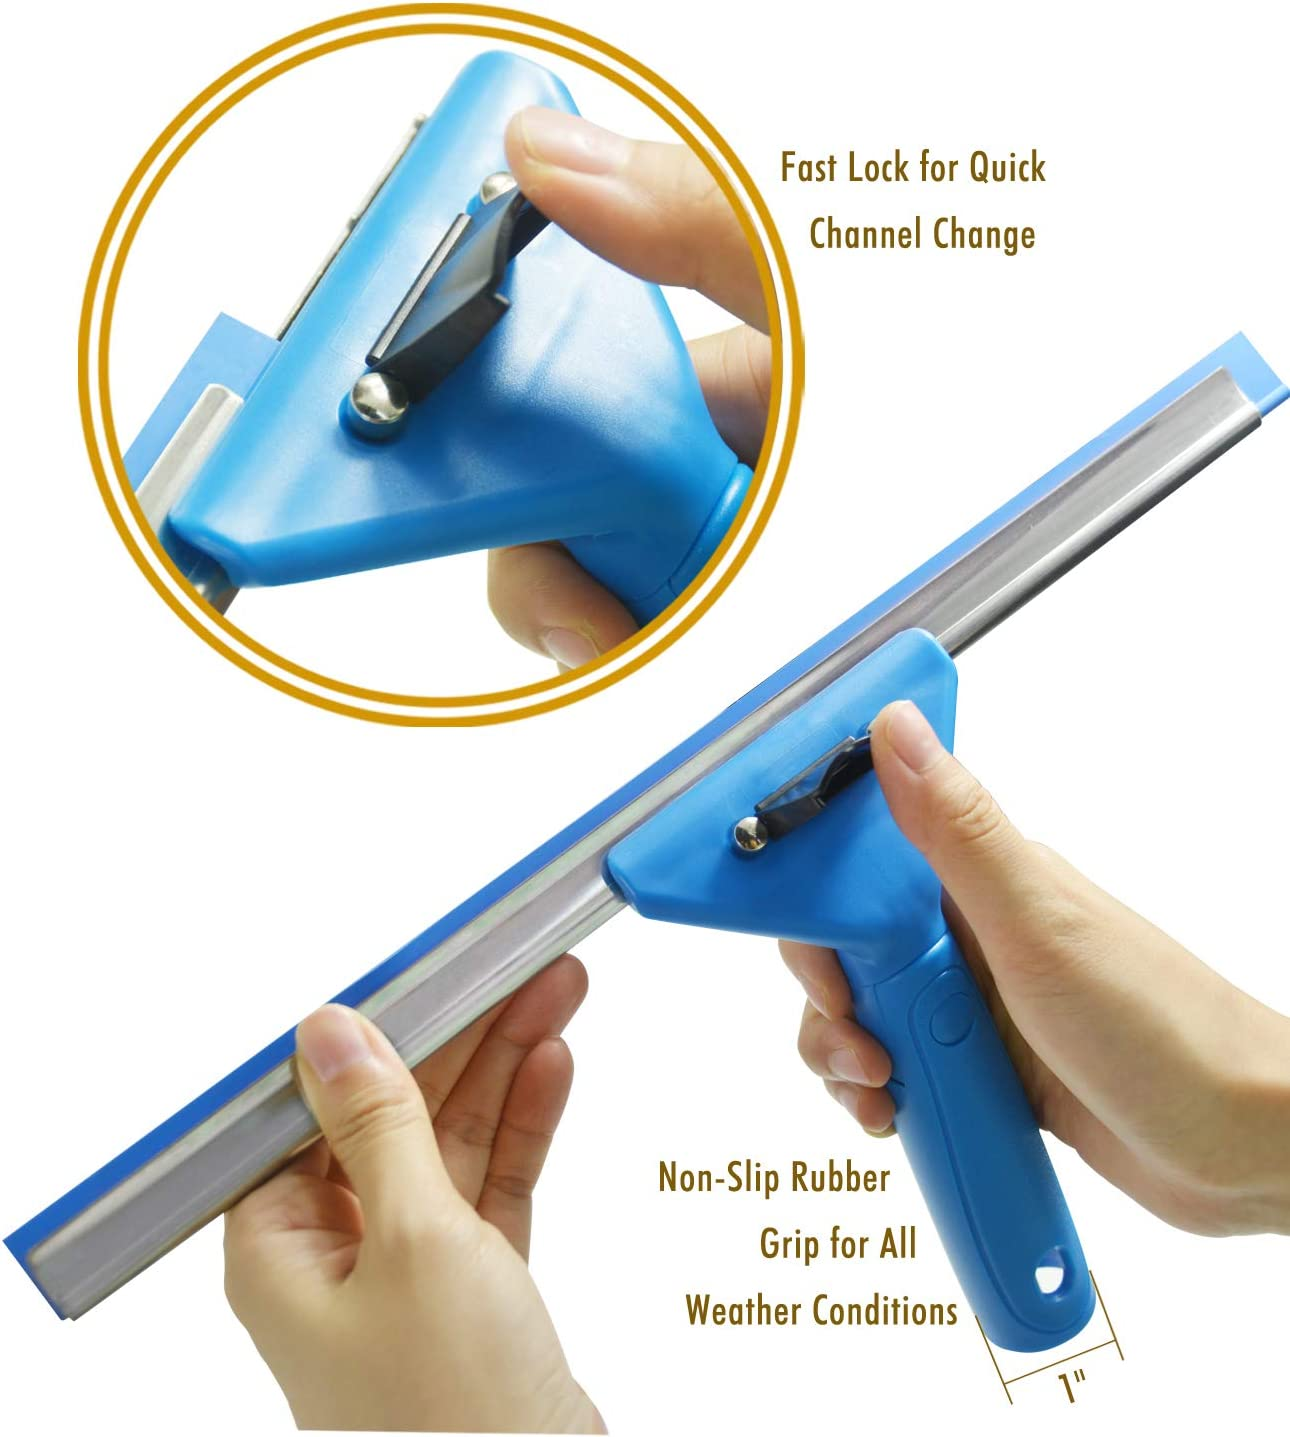 ITTAHO All Purpose Squeegee,Shower Squeegee with Handle and Rubber Replacement,Squeegee Shower Cleaner for Bathroom Shower Glass Door Car Window Cleaning Squeegee 10 Inch